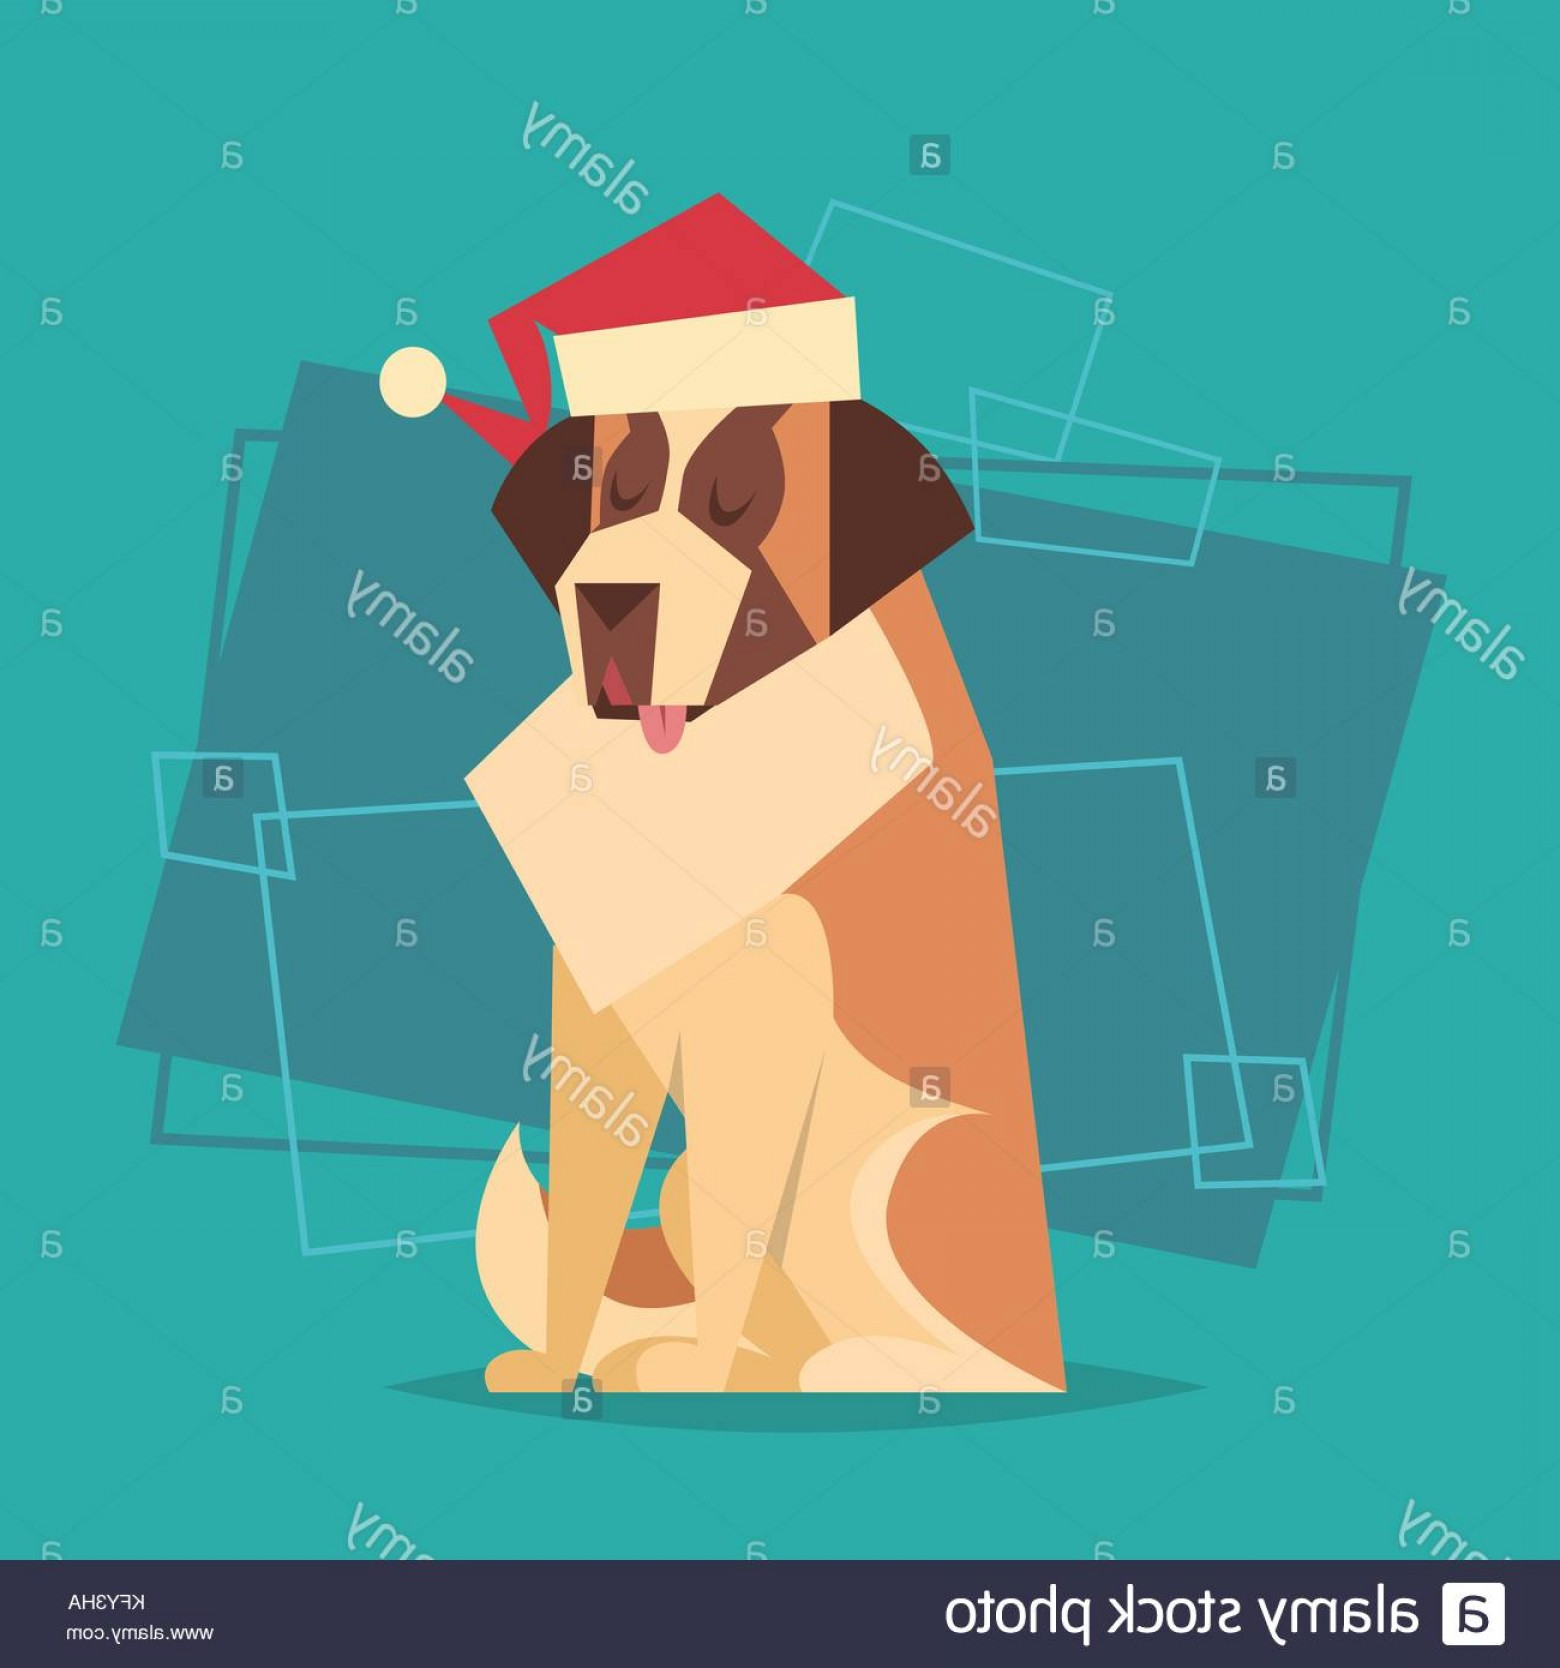 Bpxer Vector Art Happy Dog: Stock Photo Dog Wear Santa Hat Happy New Year Zodiac Symbol Icon